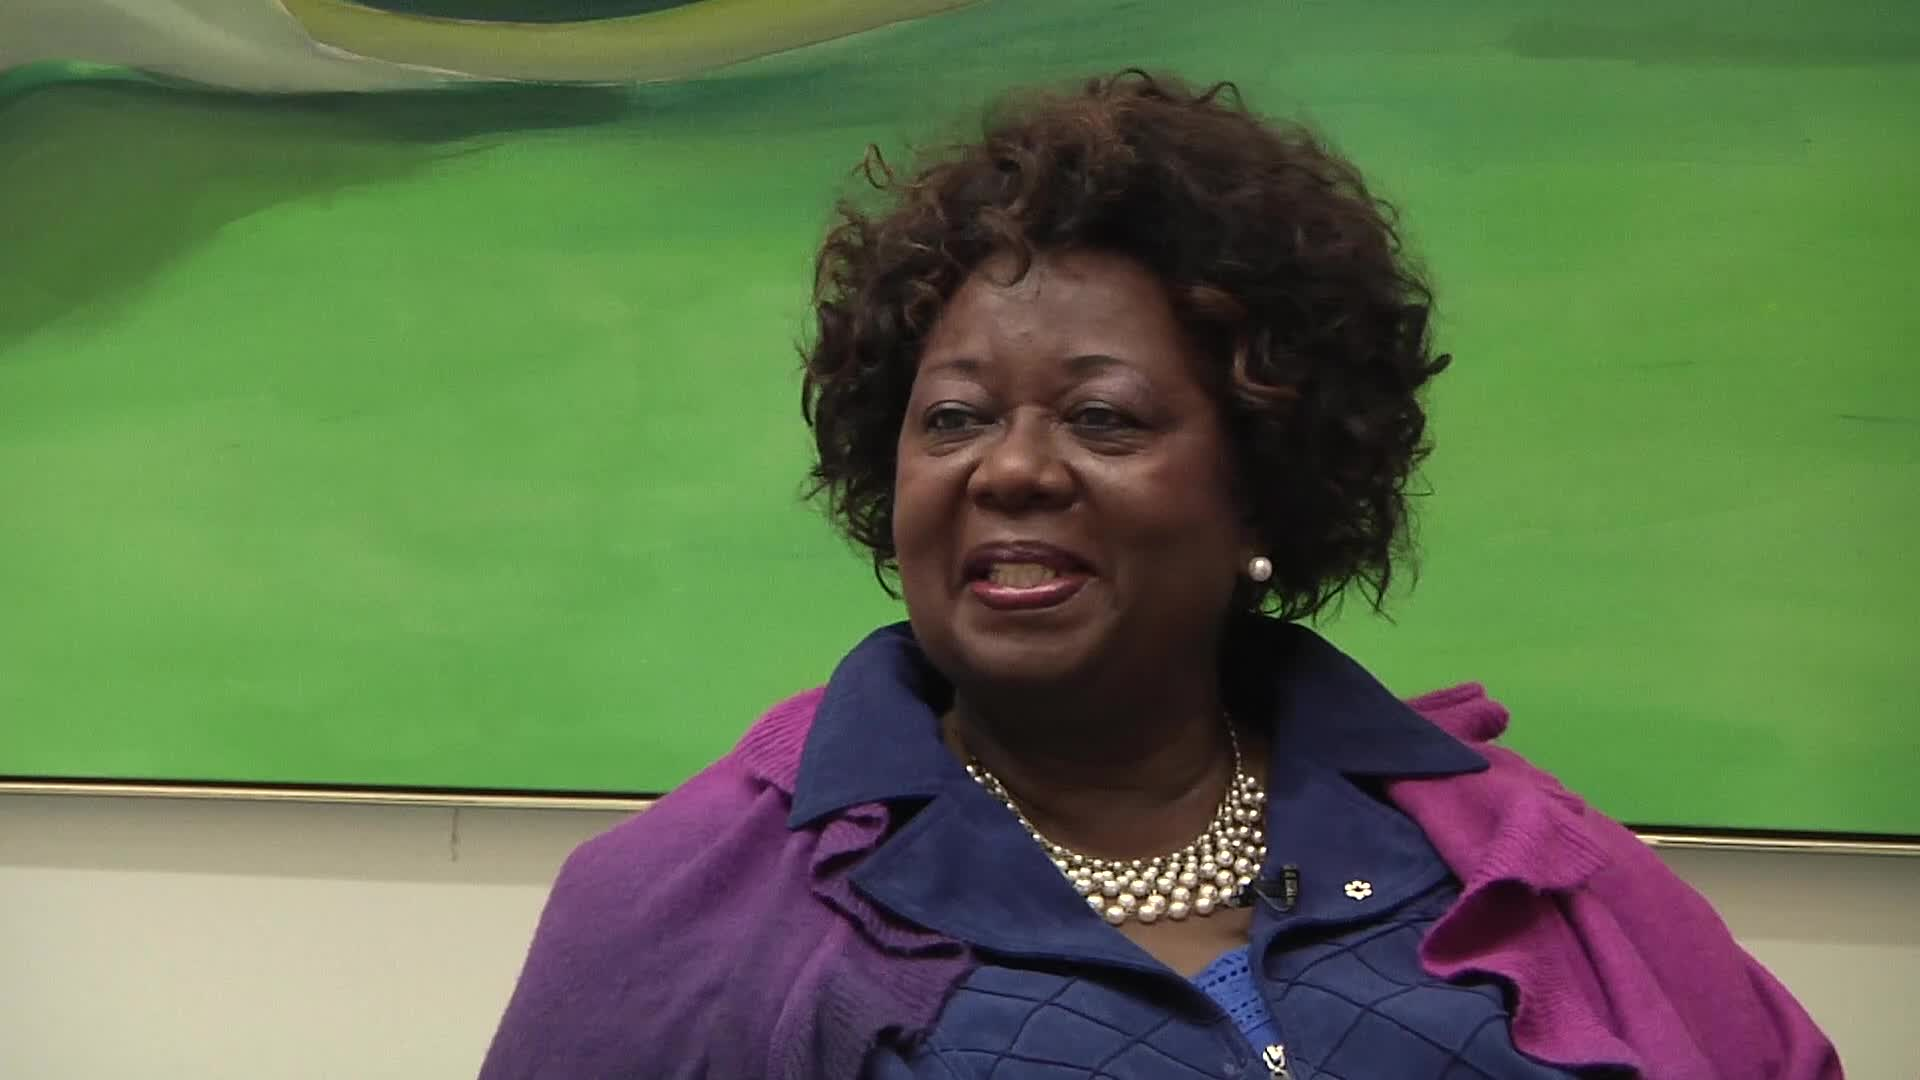 Jean Augustine interview: Jean is still collecting